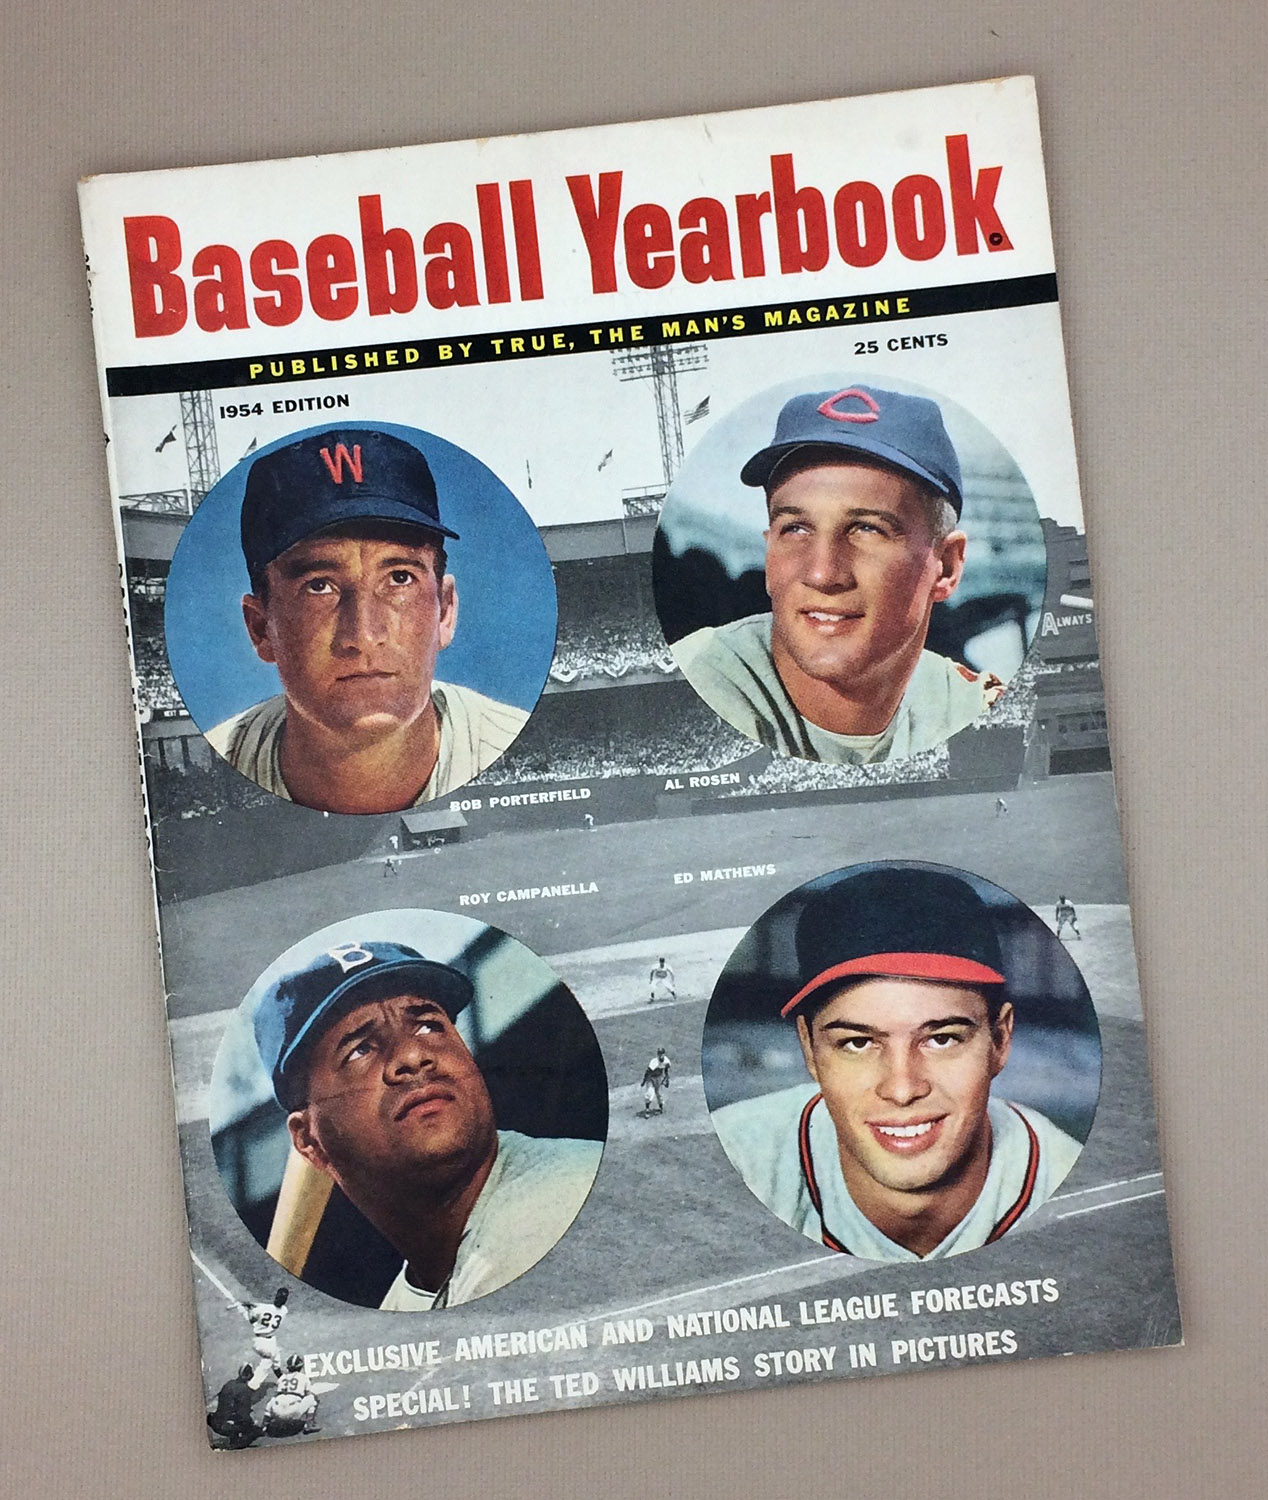 1954 BASEBALL YEARBOOK Magazine